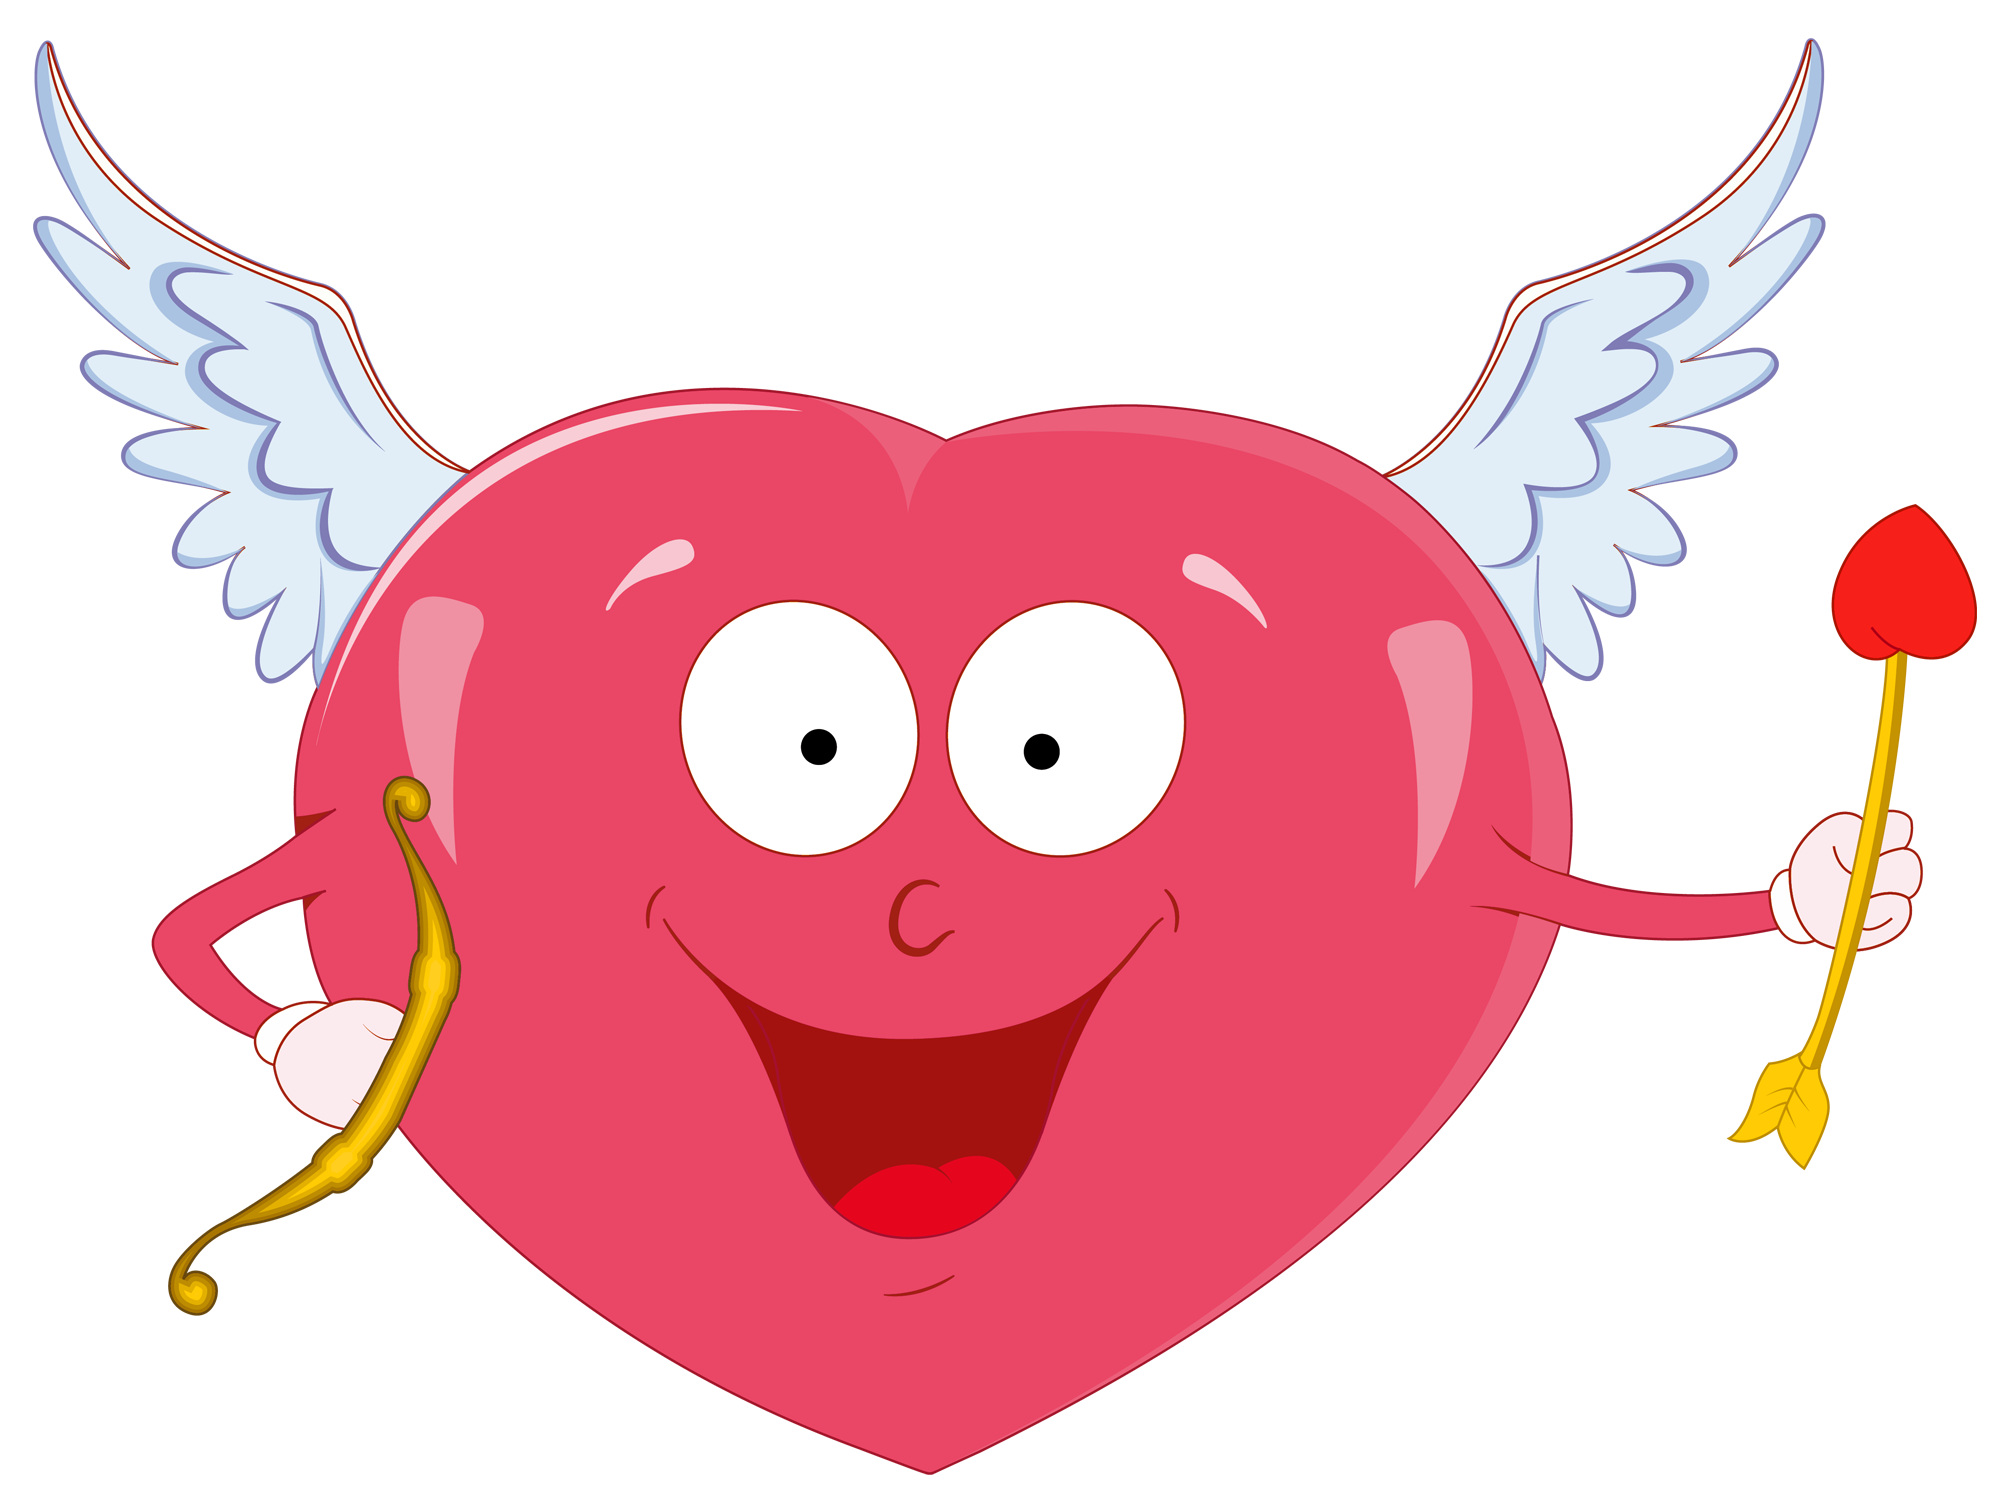 2000x1487 Valentine Heart With Cupid Bow Png Clipartu200b Gallery Yopriceville